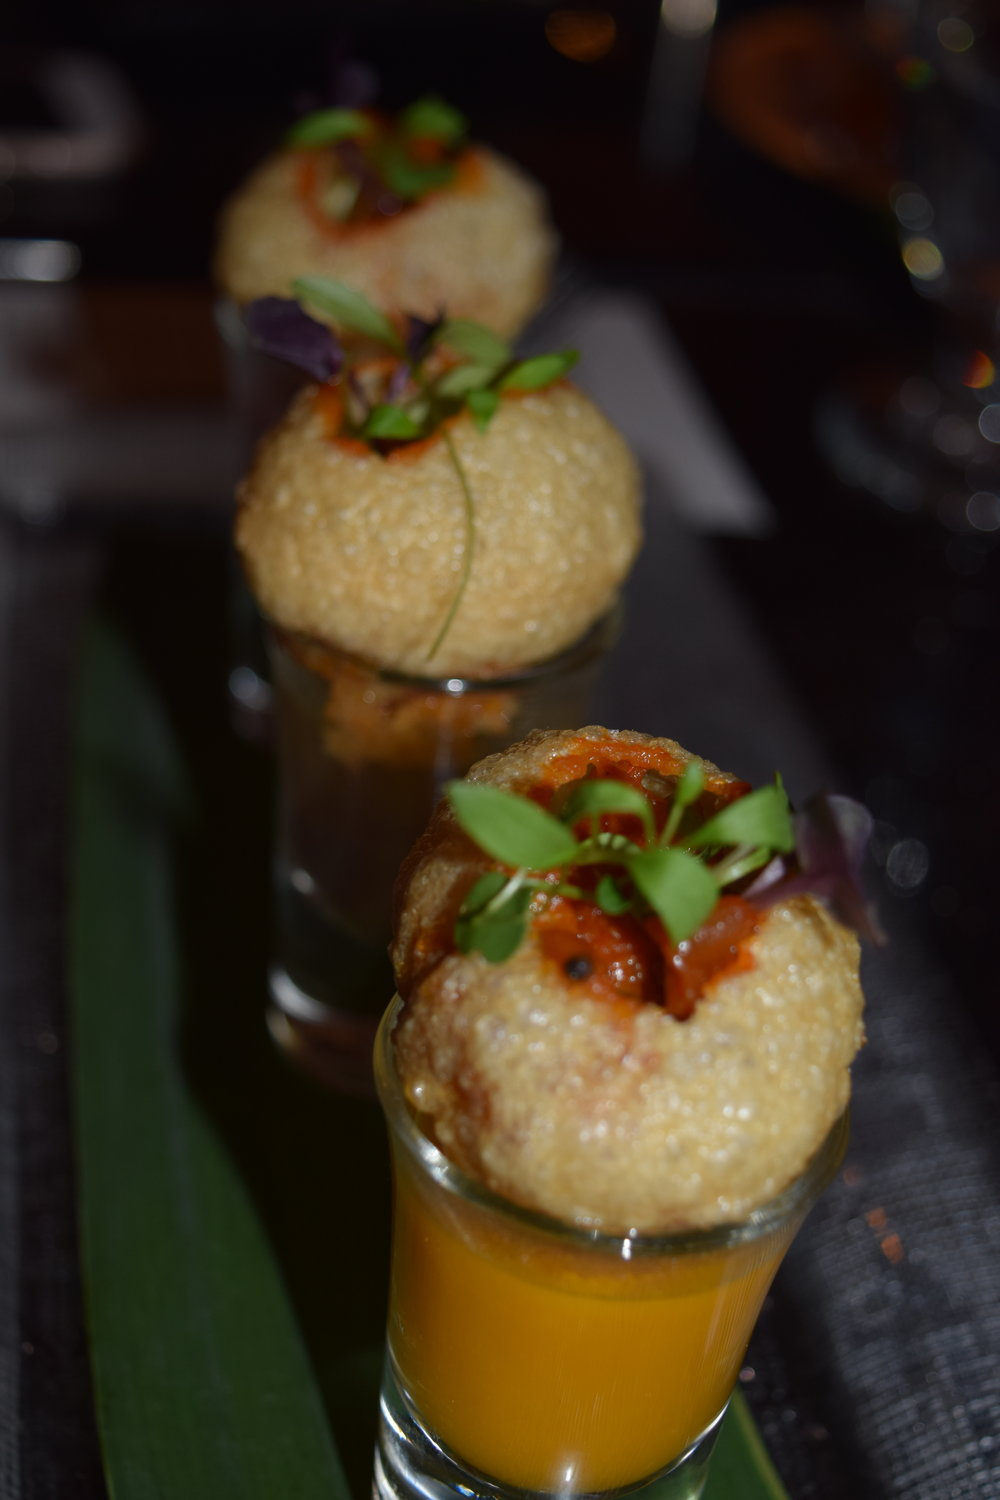 SHRIMP PUCHKA SHOTS (semolina puffs, spiced shrimp, tomatoes, onions, with a trio of chasers - kokum, mango and tamarind-cumin)